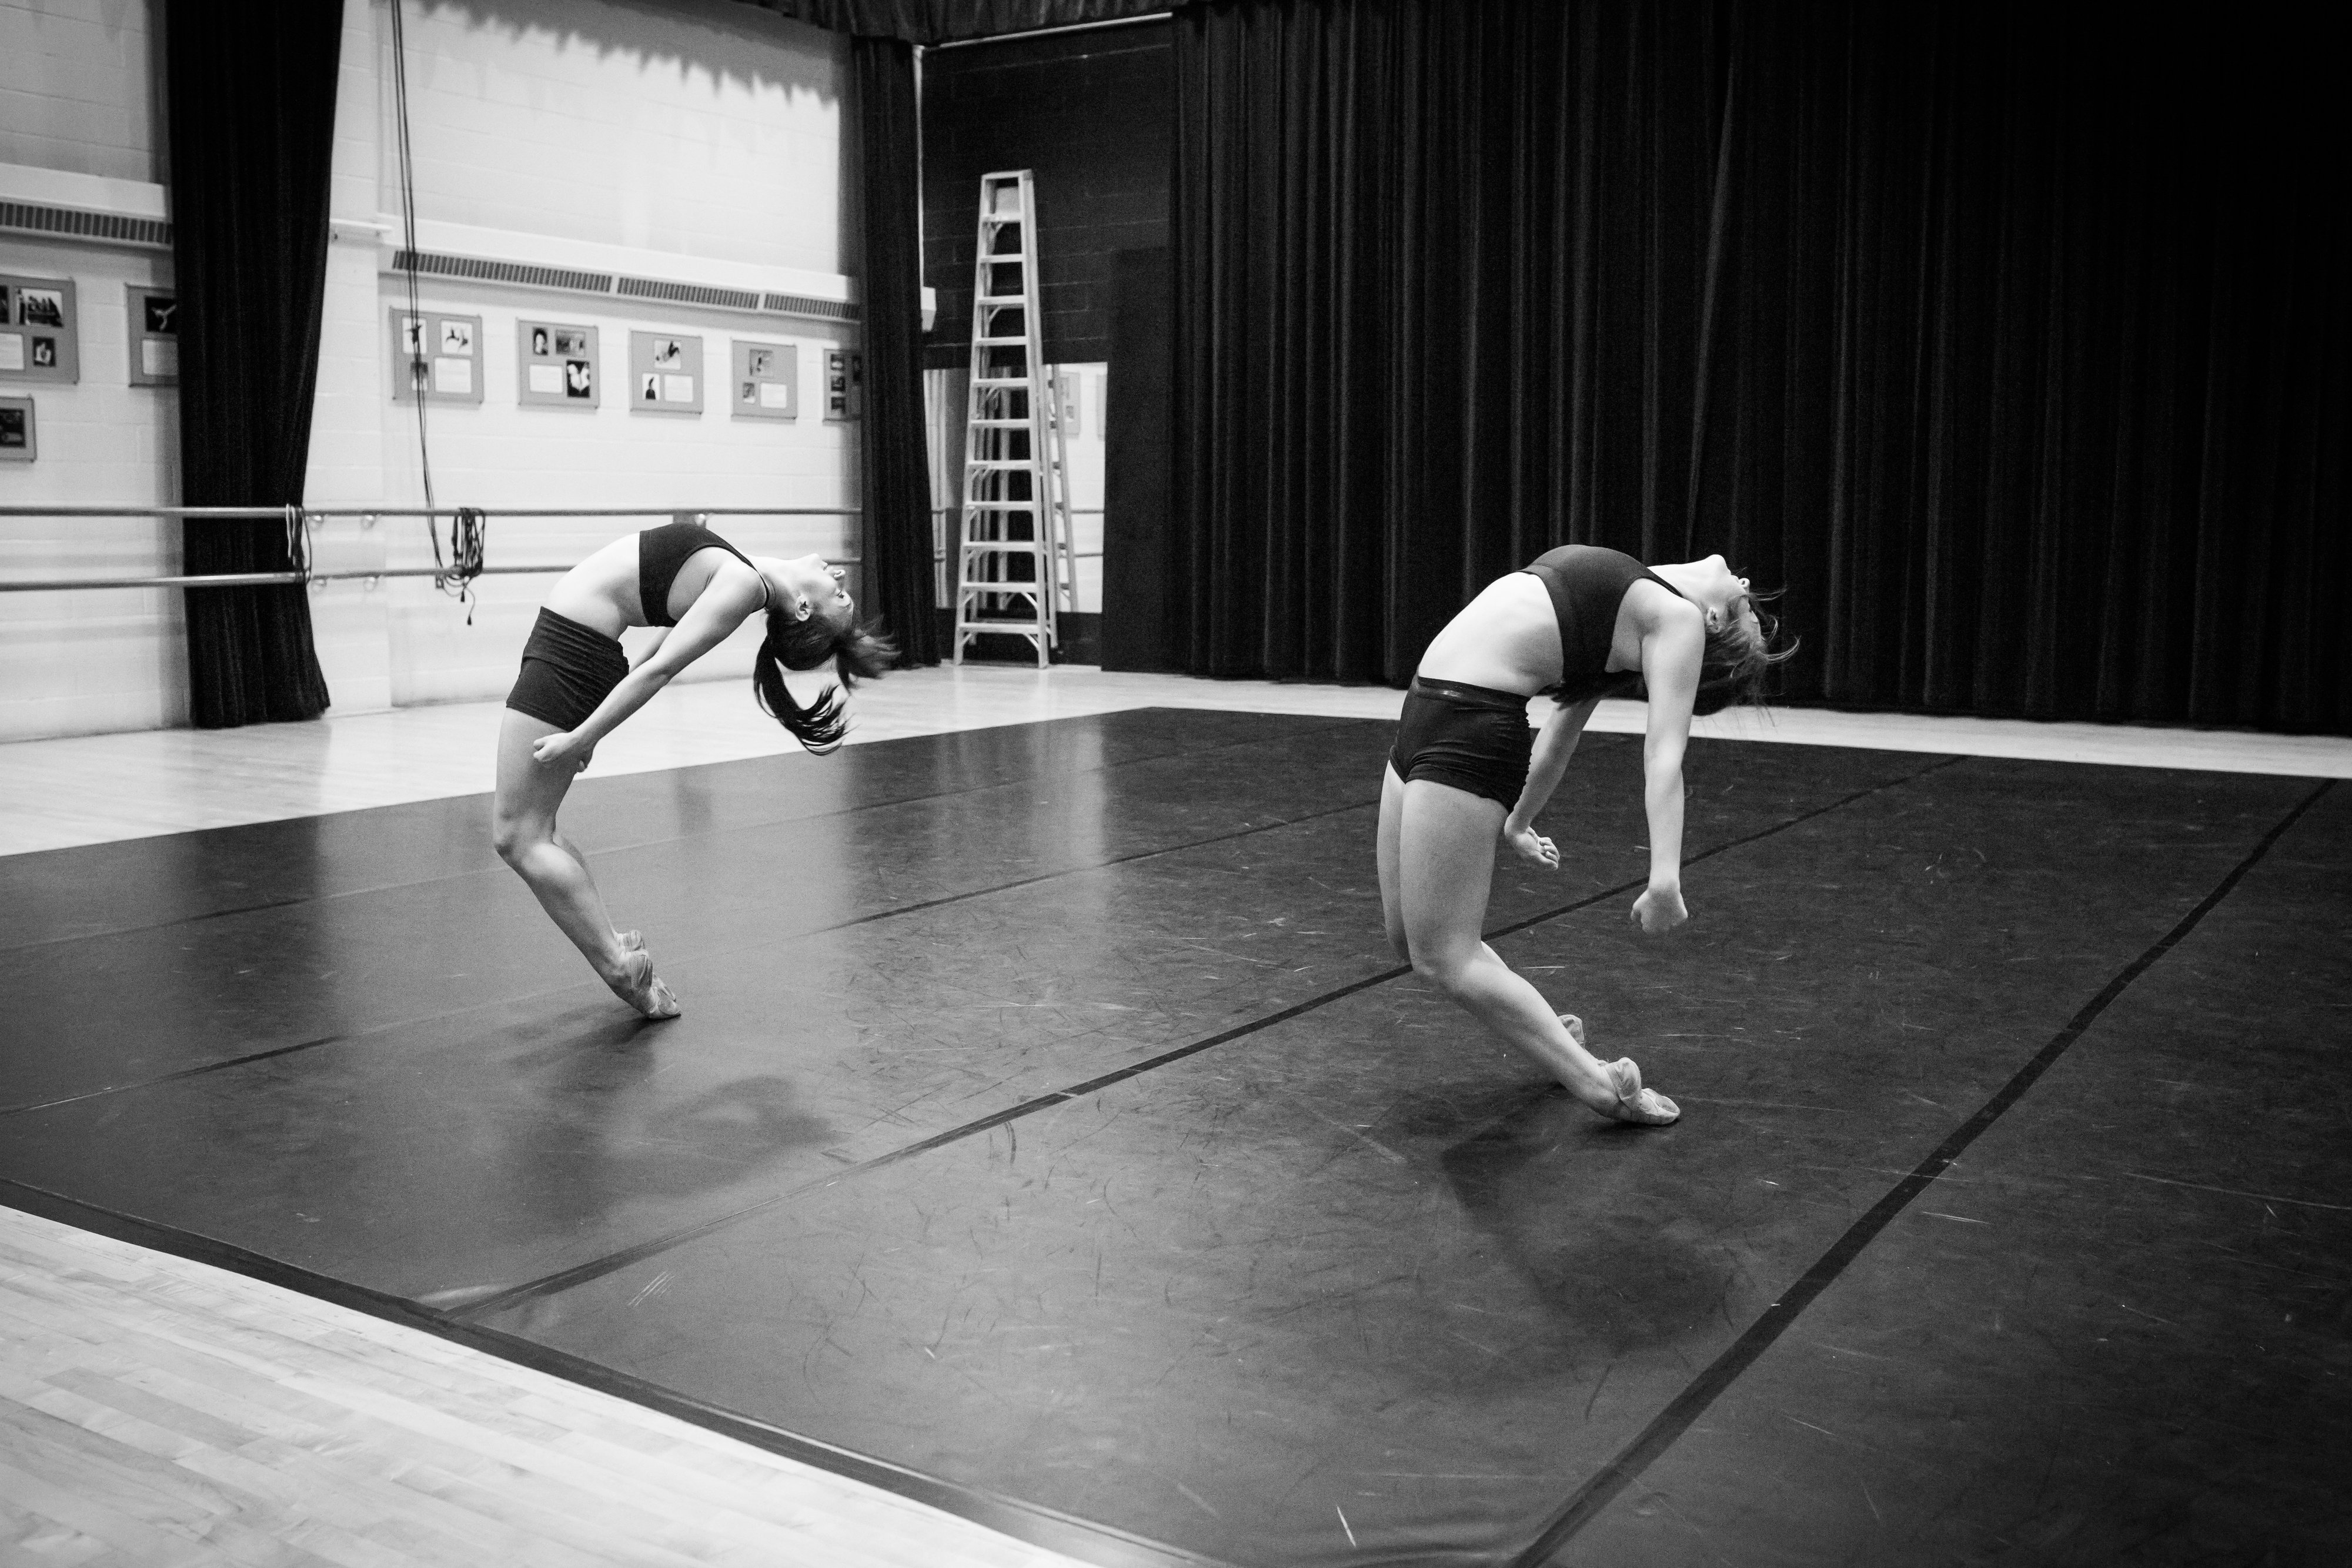 Dancers arched back in greyscale